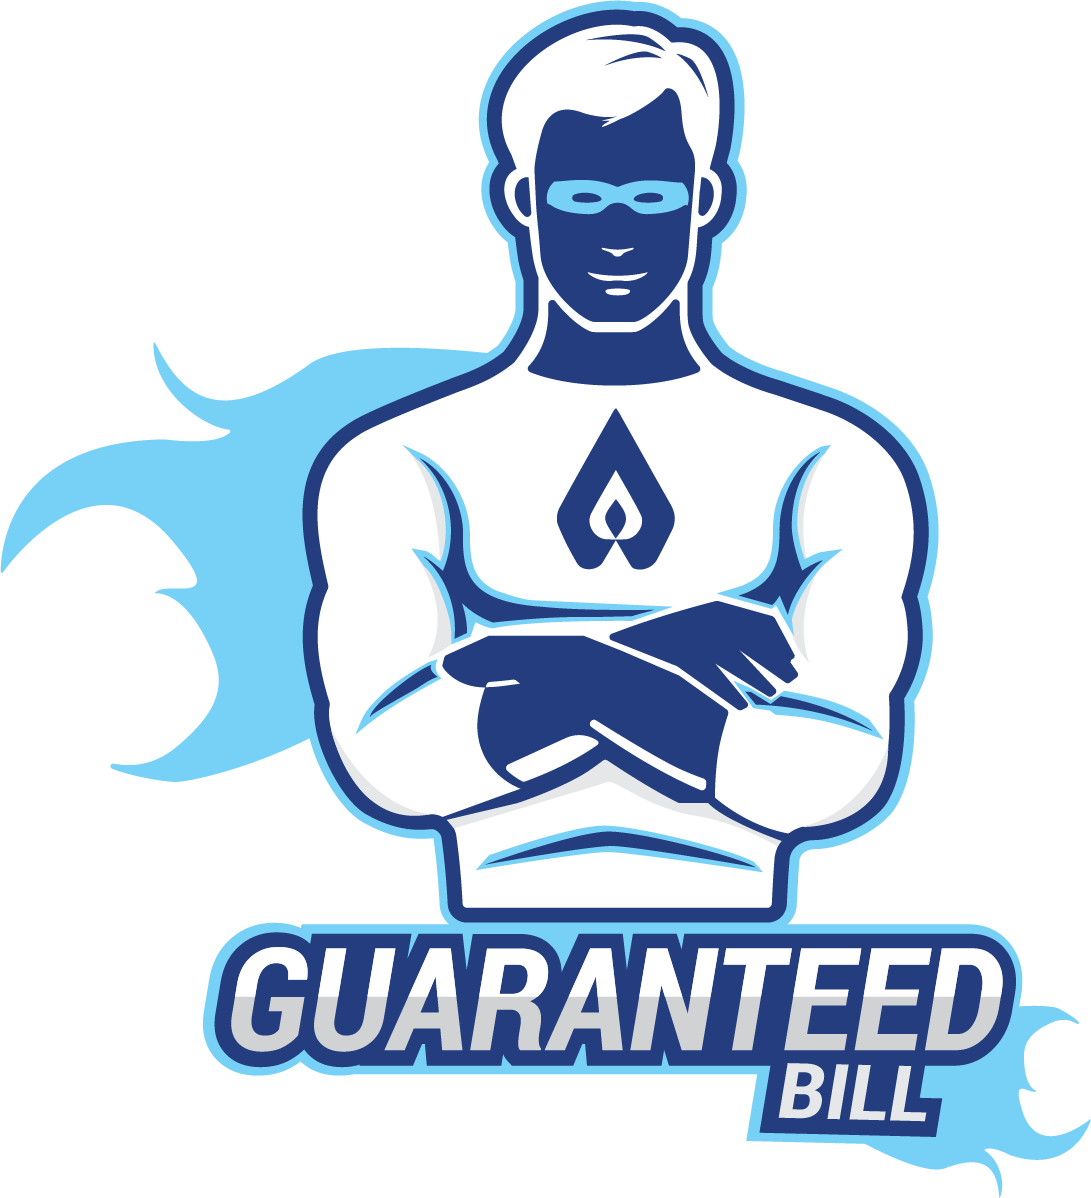 Guaranteed Bill Pay Seal Image